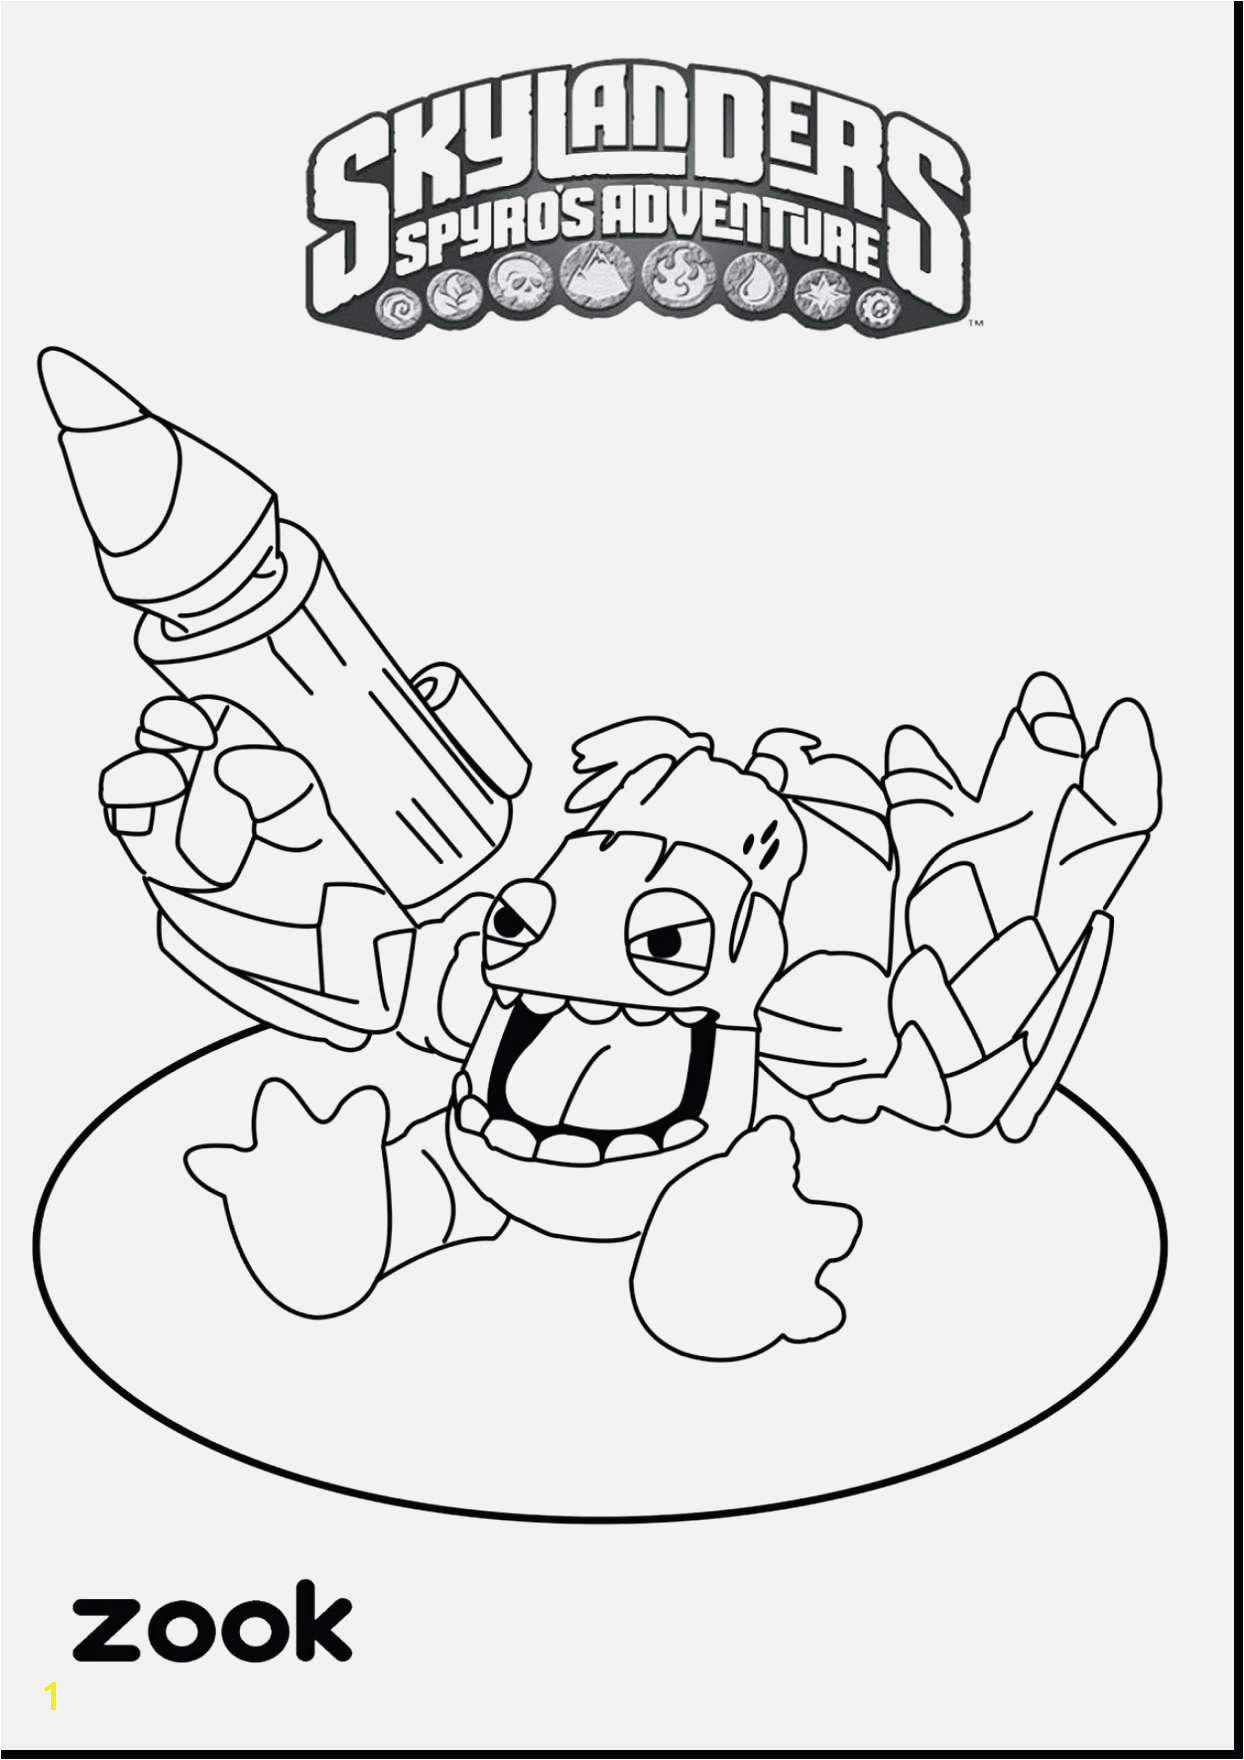 Mosaic Coloring Pages to Print Trippy Coloring Pages Lovely Trippy Coloring Pages Likable Good